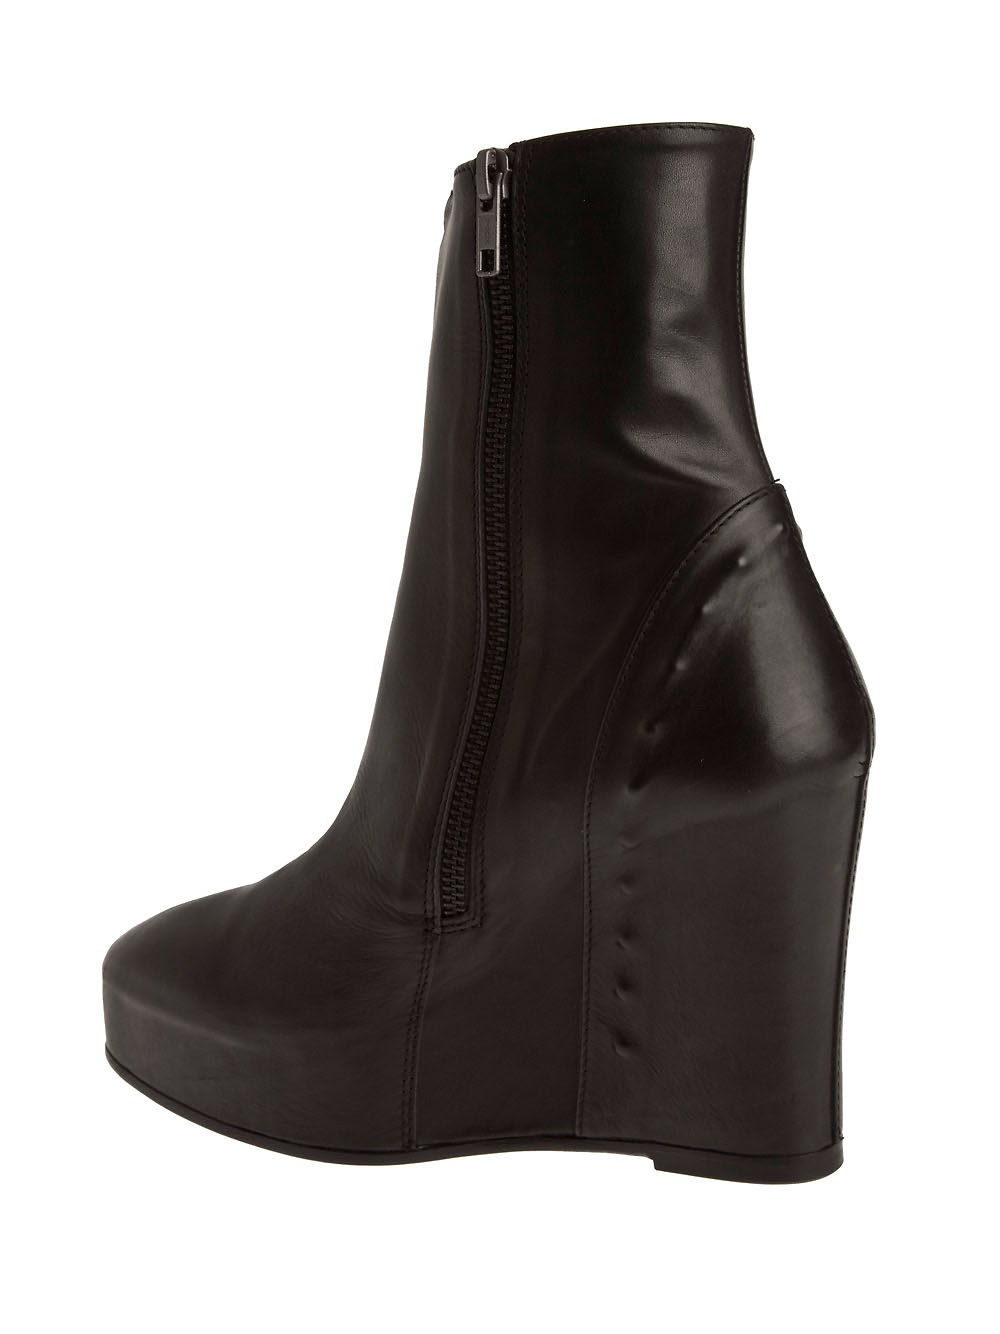 Ann Demeulemeester Black Wedge Boots HPBwaYWqEE